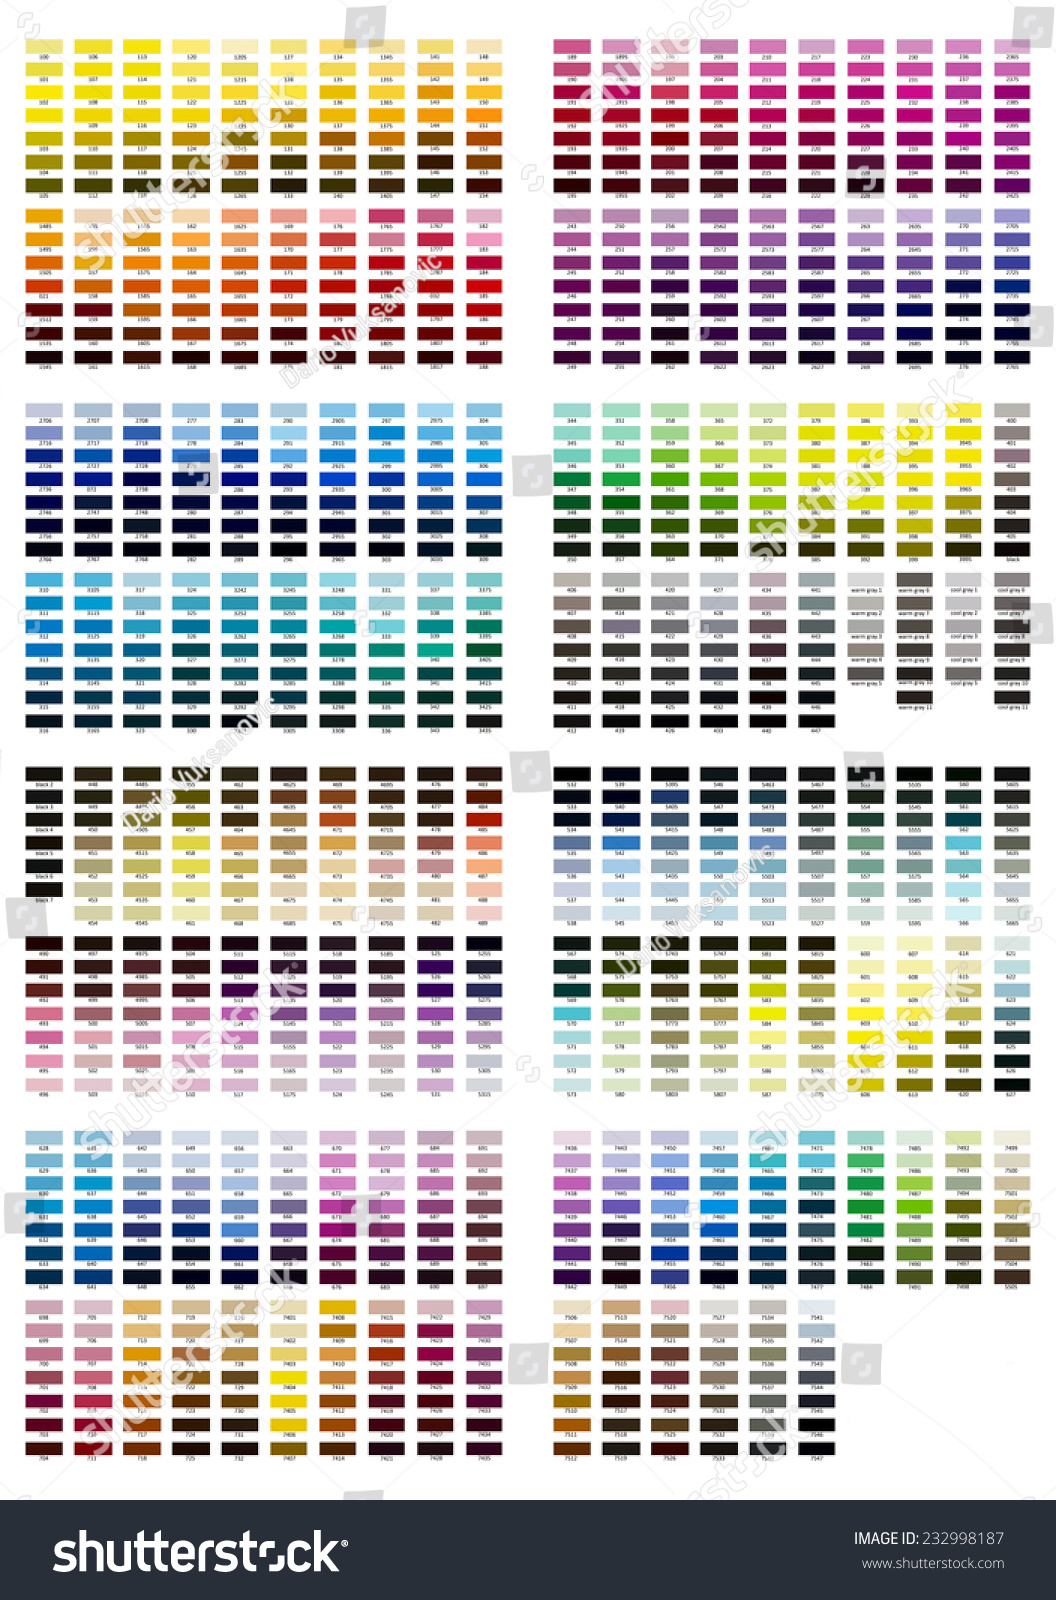 Color Reference Illustration All Shades 100 Stock